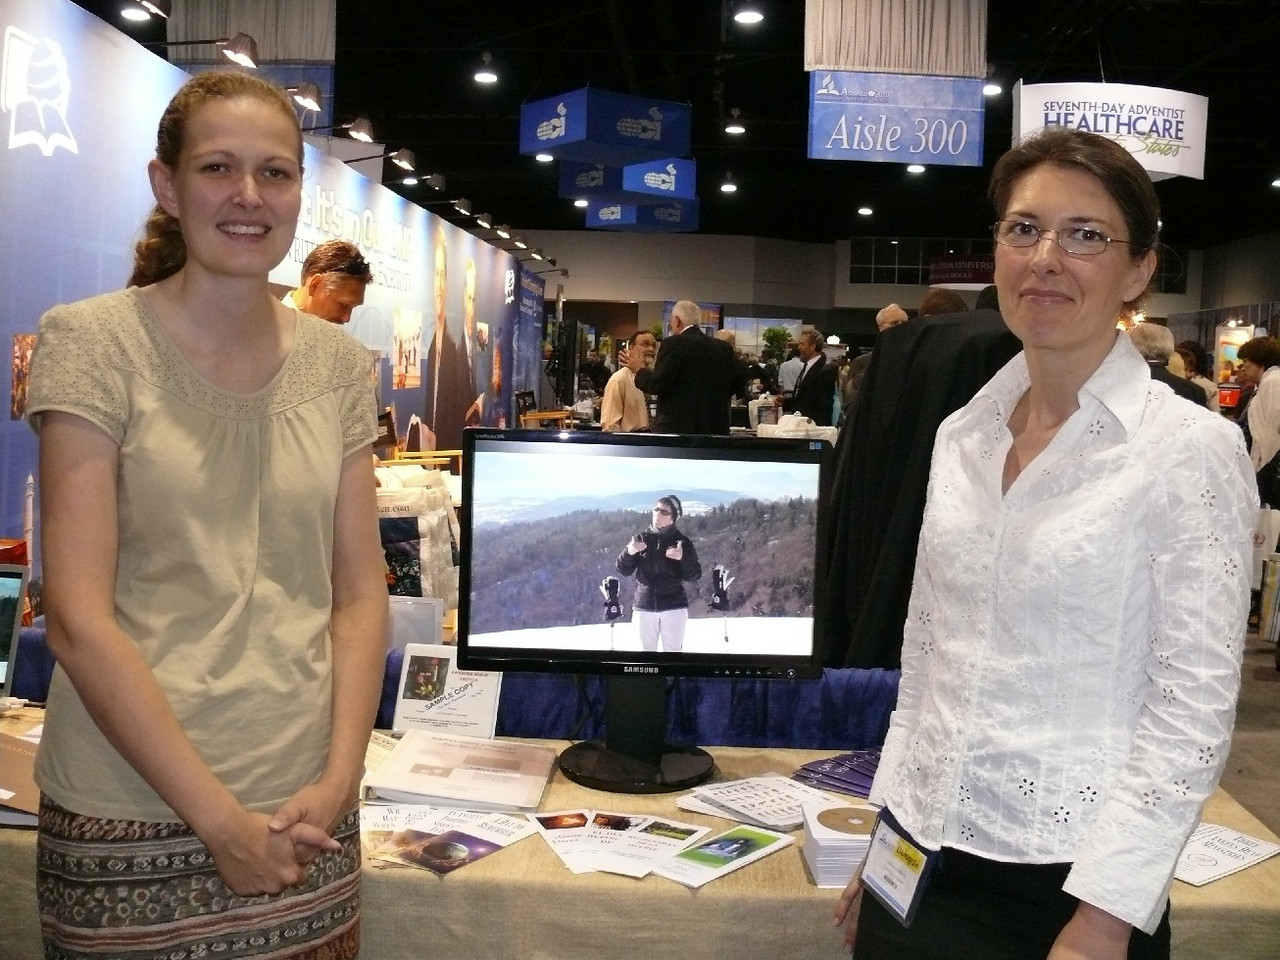 Esther Doss (left) with Valerie from France.  Esther had signed a video in the American rockies and the idea was copied by Valerie and her friends from France.  The product you can see on the screen as signed in the European alps.